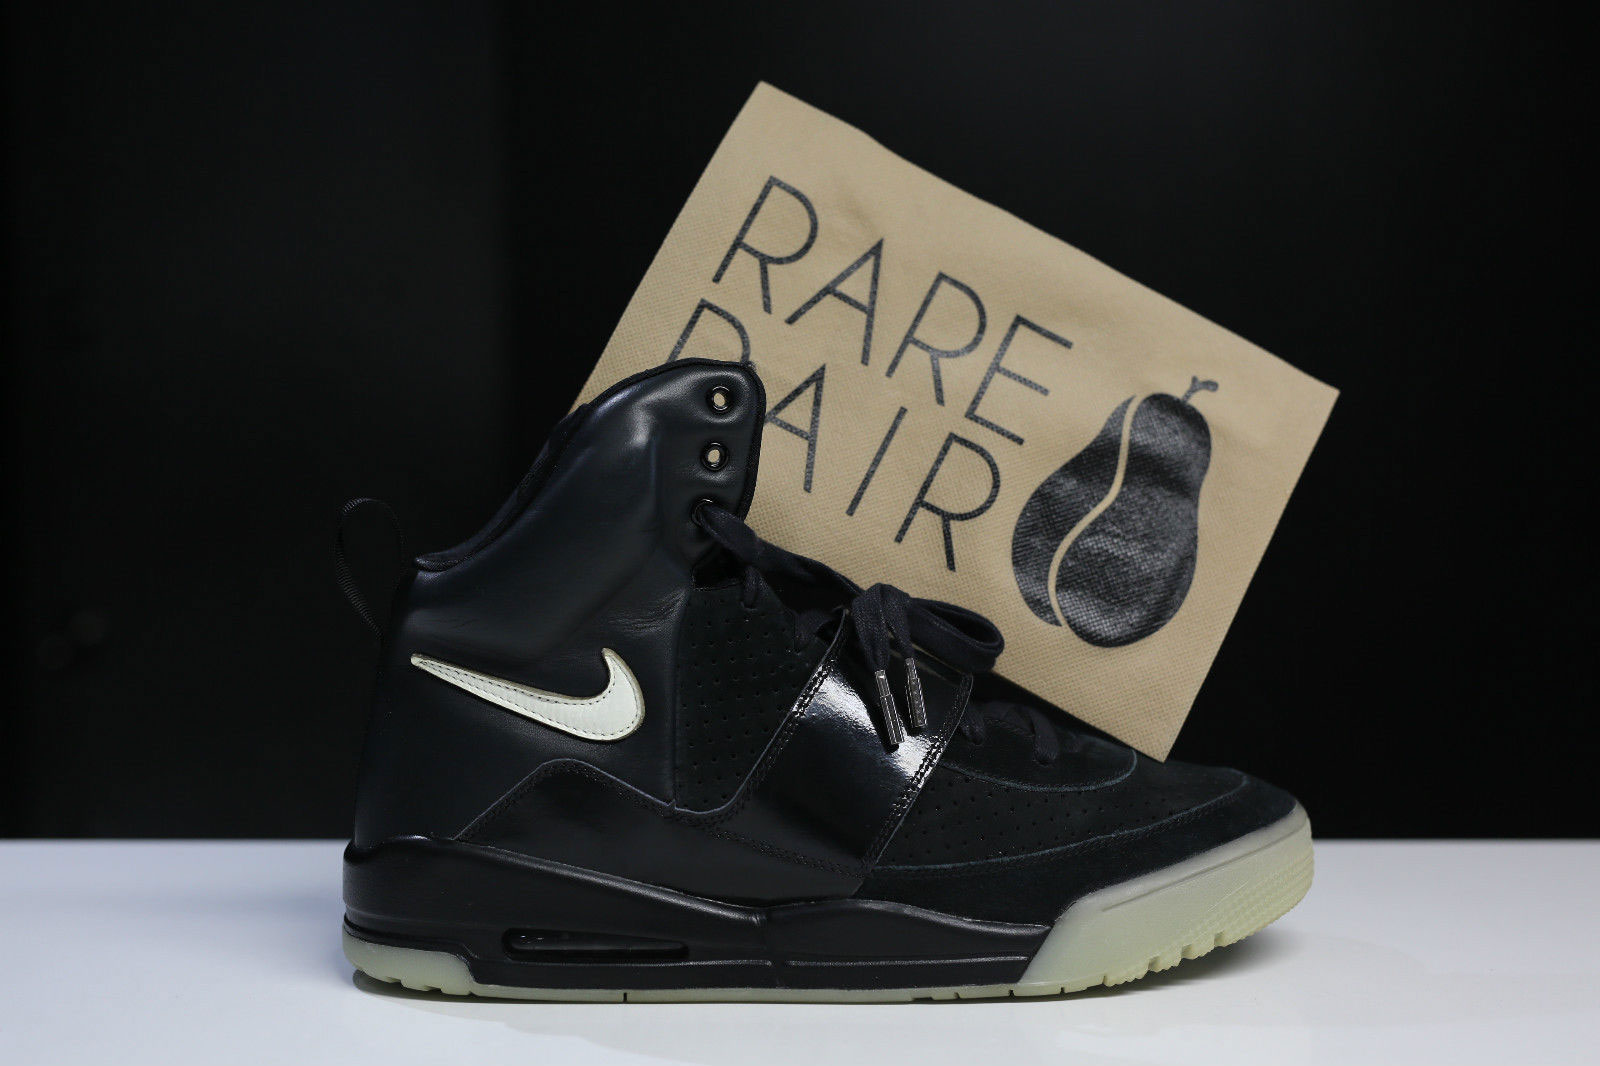 nike air yeezy kanye west black glow promo sample 1 HisPotion